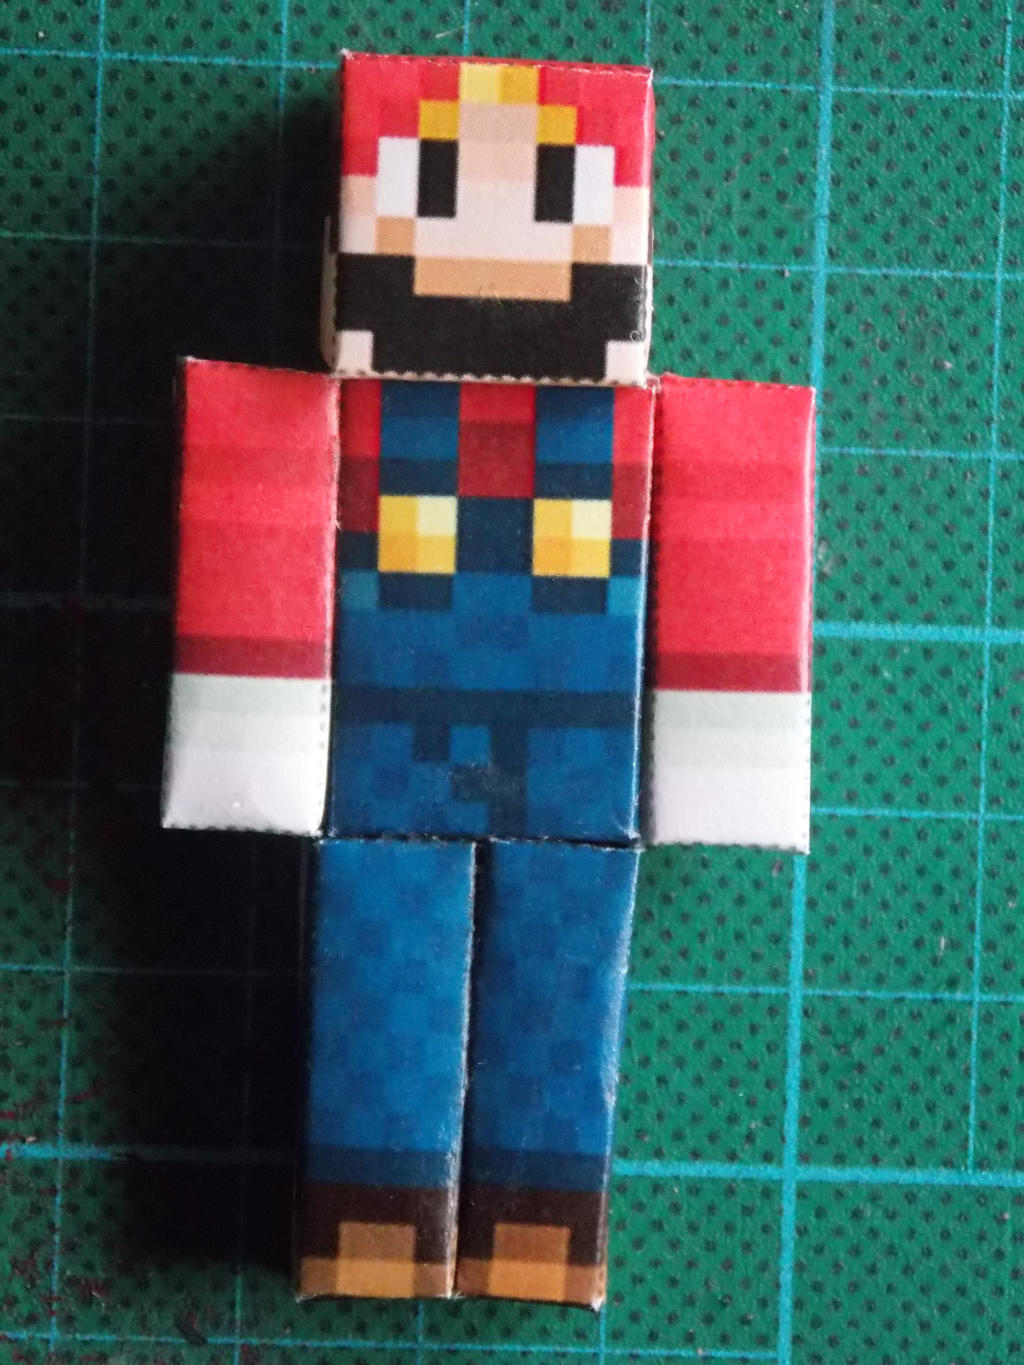 Mario minecraft papercraft by inmate0801 on deviantart mario minecraft papercraft by inmate0801 jeuxipadfo Images